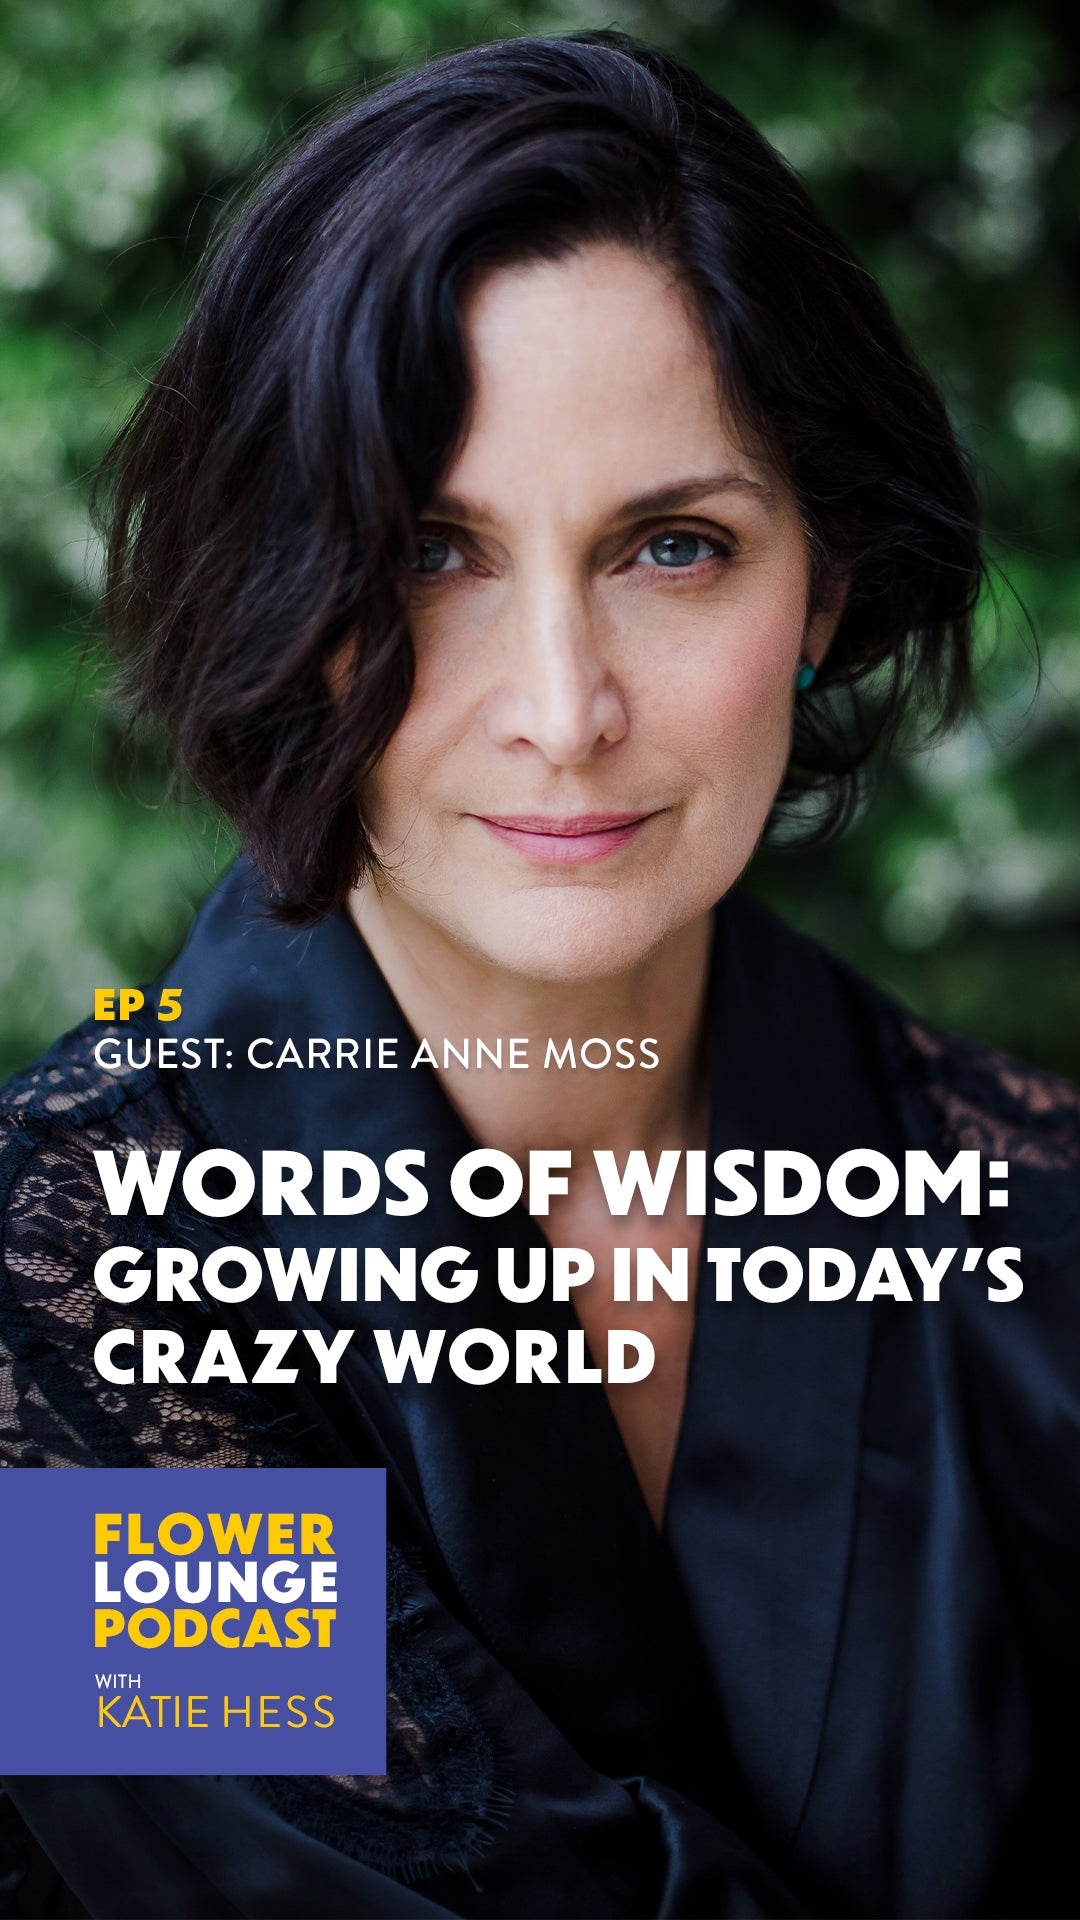 carrie anne moss podcast